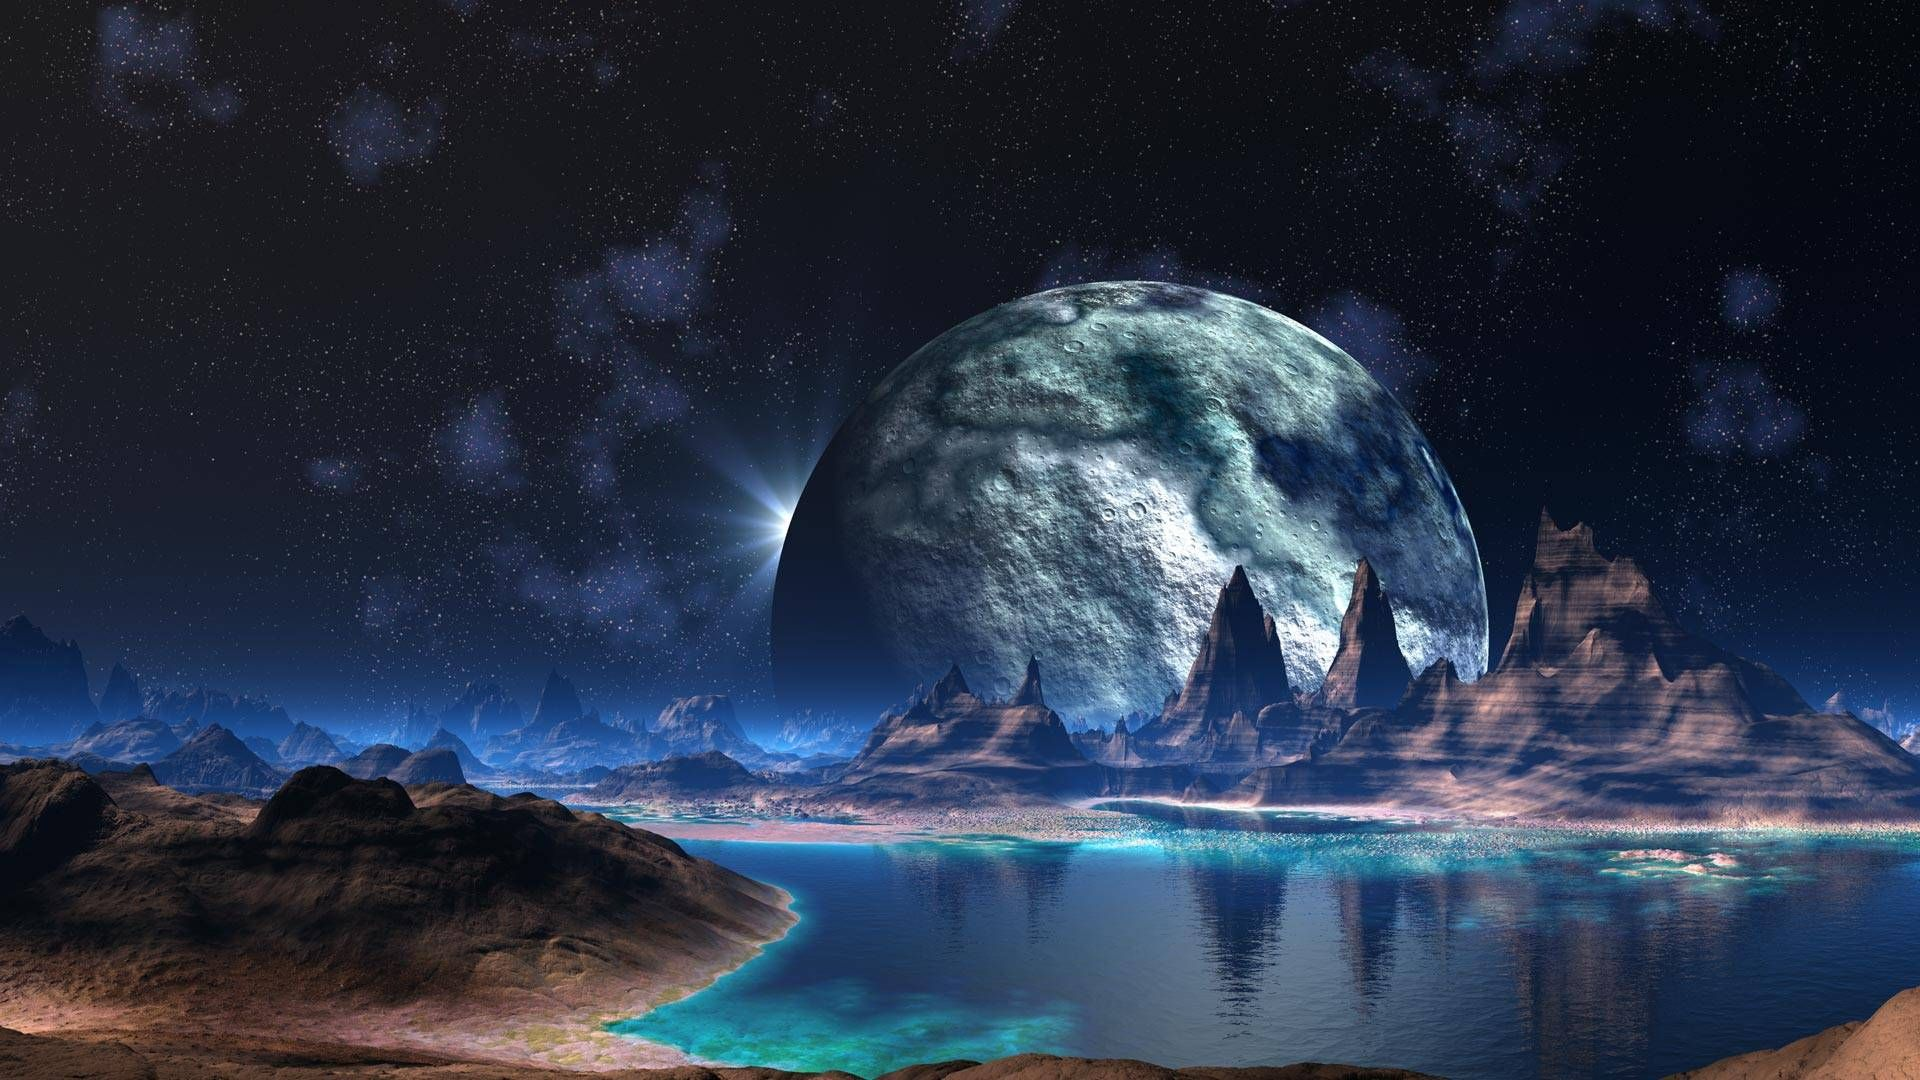 Nice Background For The Arena Area Of Fighting This Would Add A Really Cool Feeling Of Th Sci Fi Wallpaper Space Desktop Backgrounds Cool Desktop Backgrounds